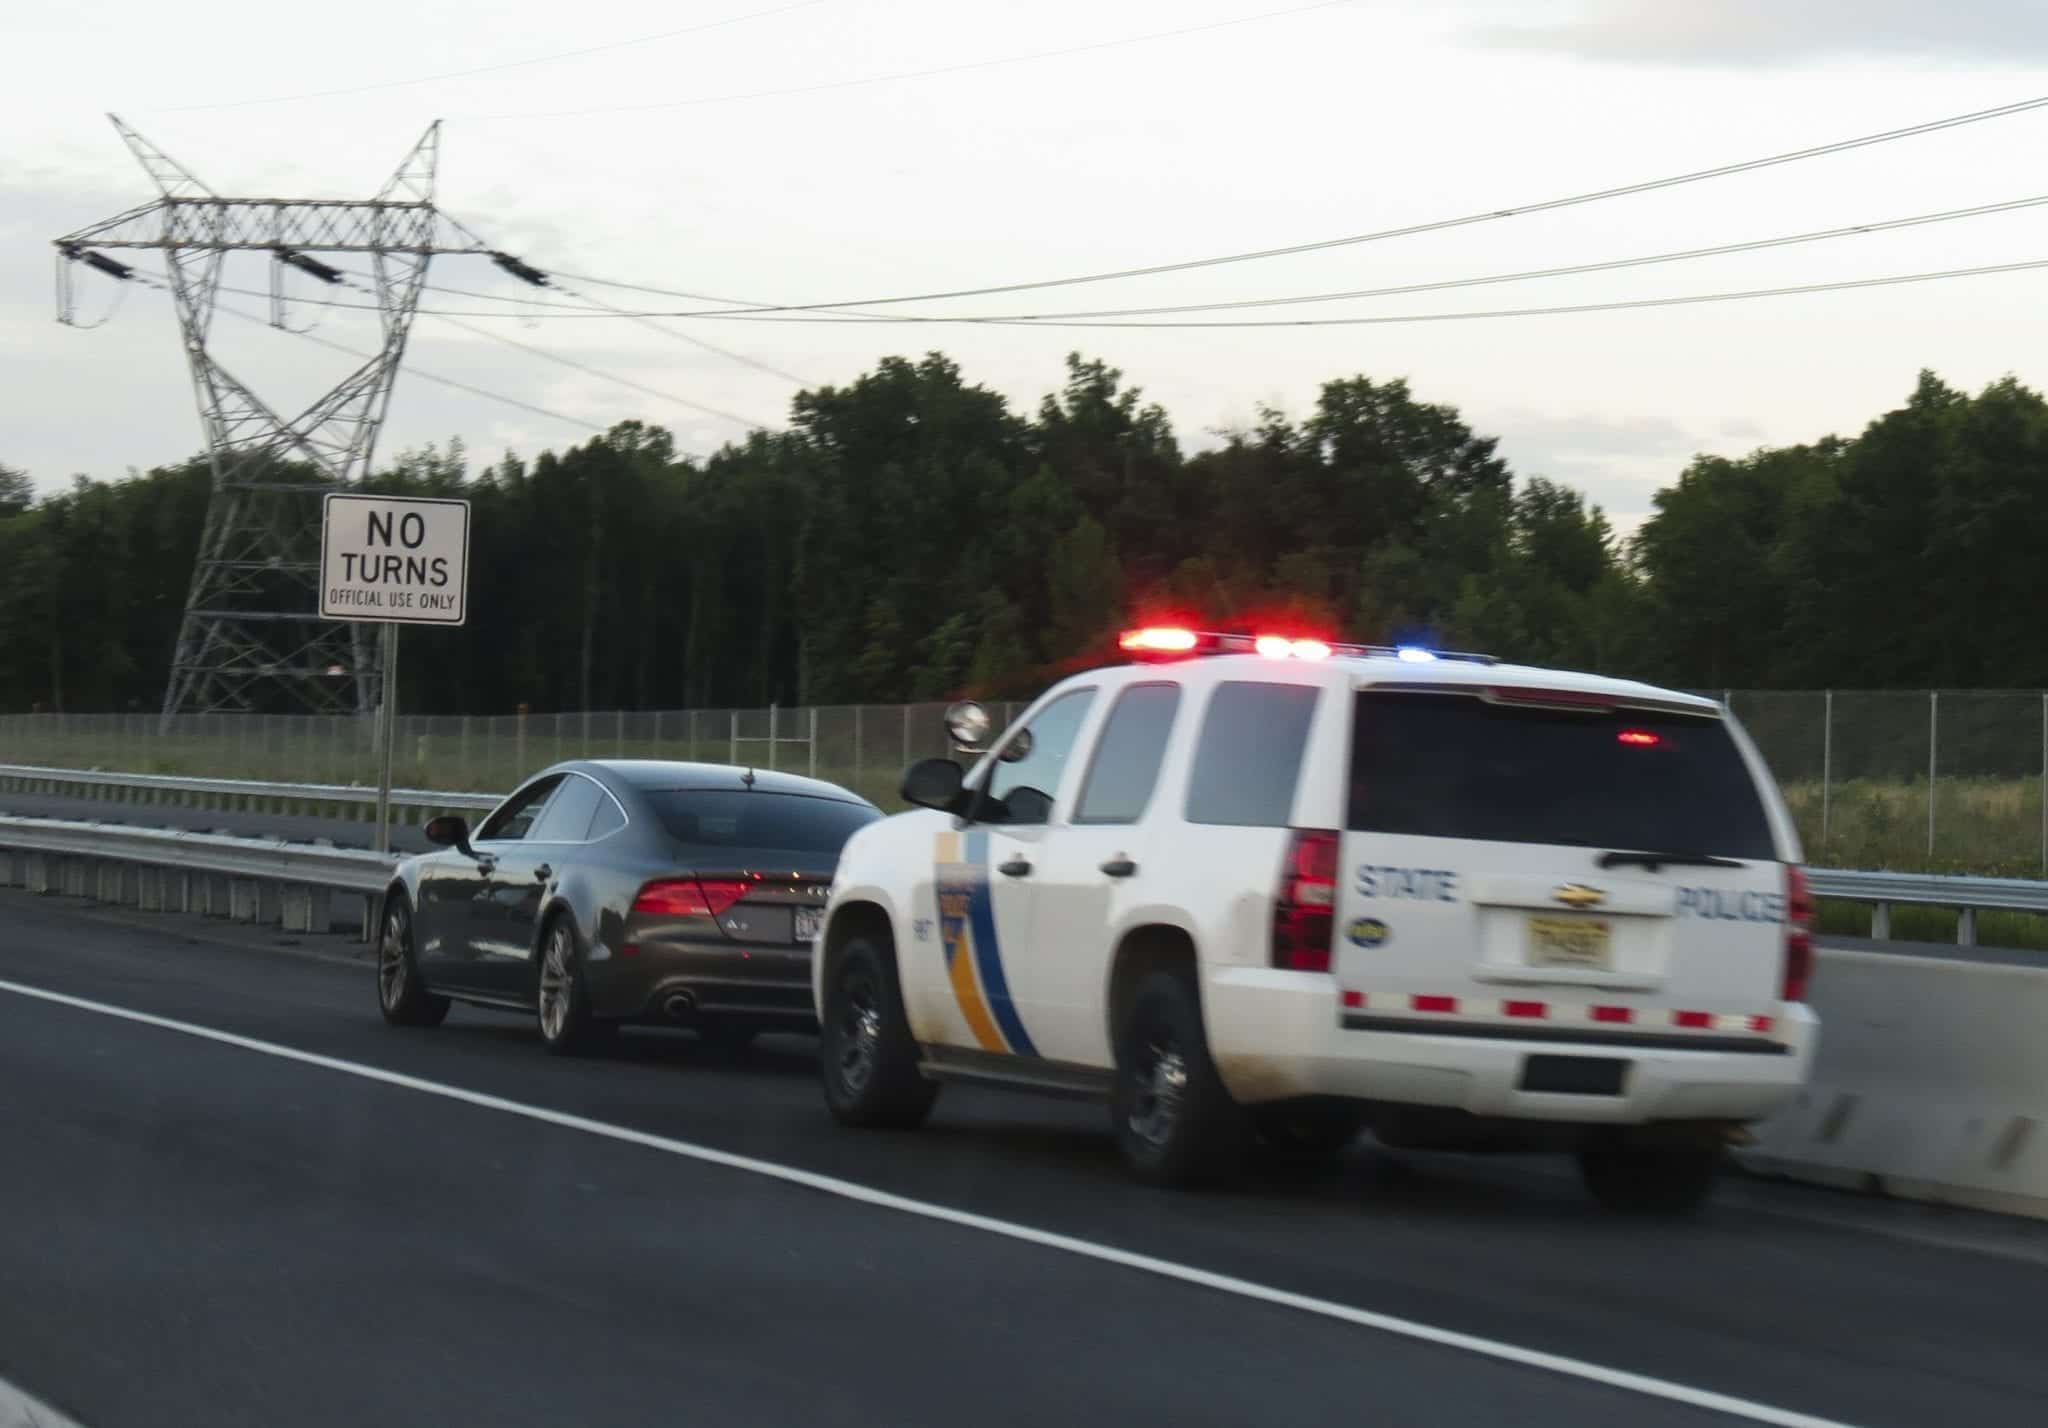 Traffic stop; image by versageek, CC BY-SA 2.0, no changes, via Wikimedia Commons.